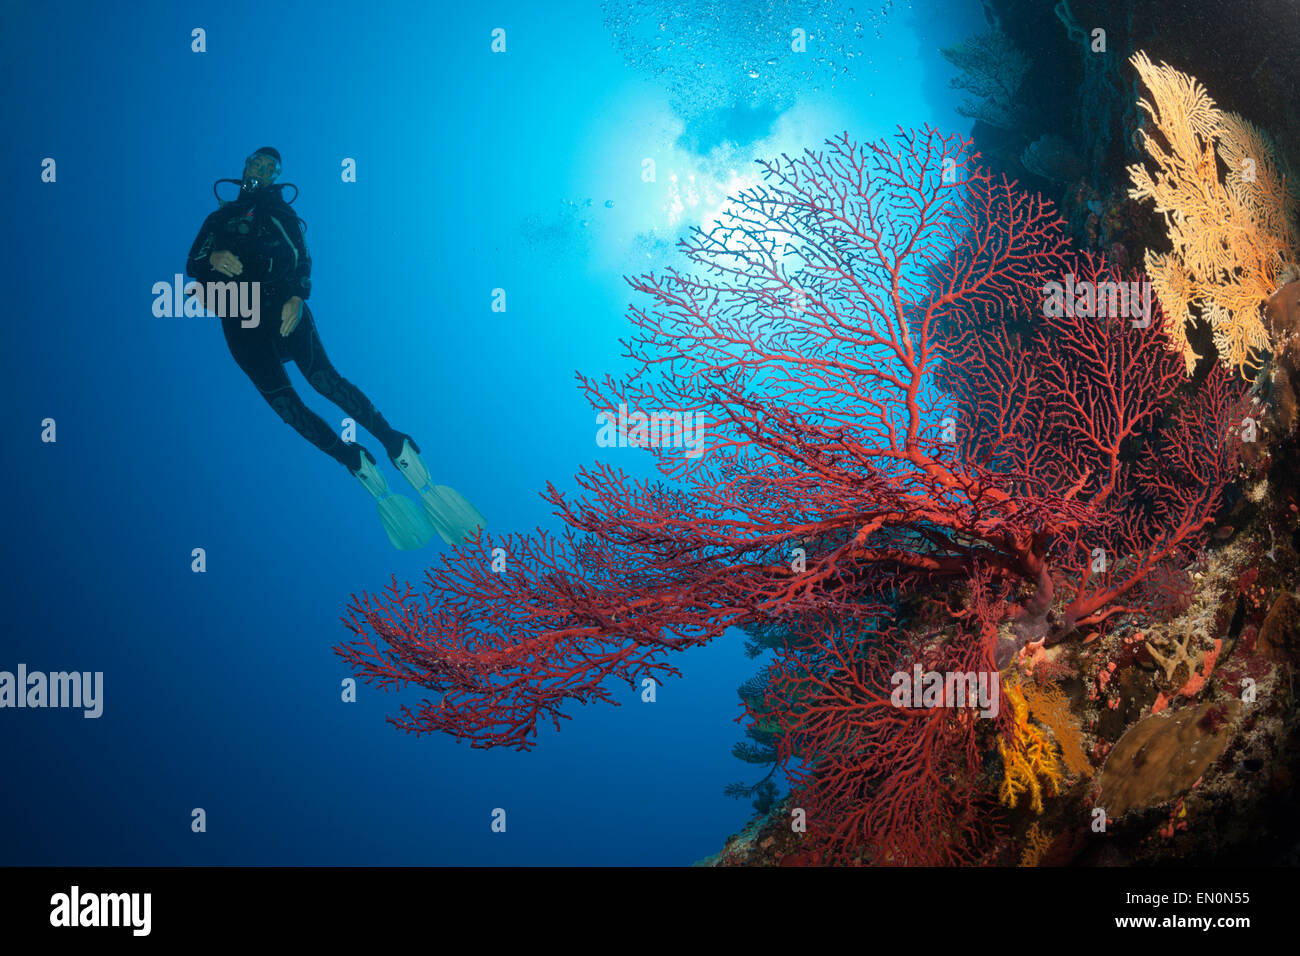 Scuba Diver over Coral Reef, Osprey Reef, Coral Sea, Australia - Stock Image